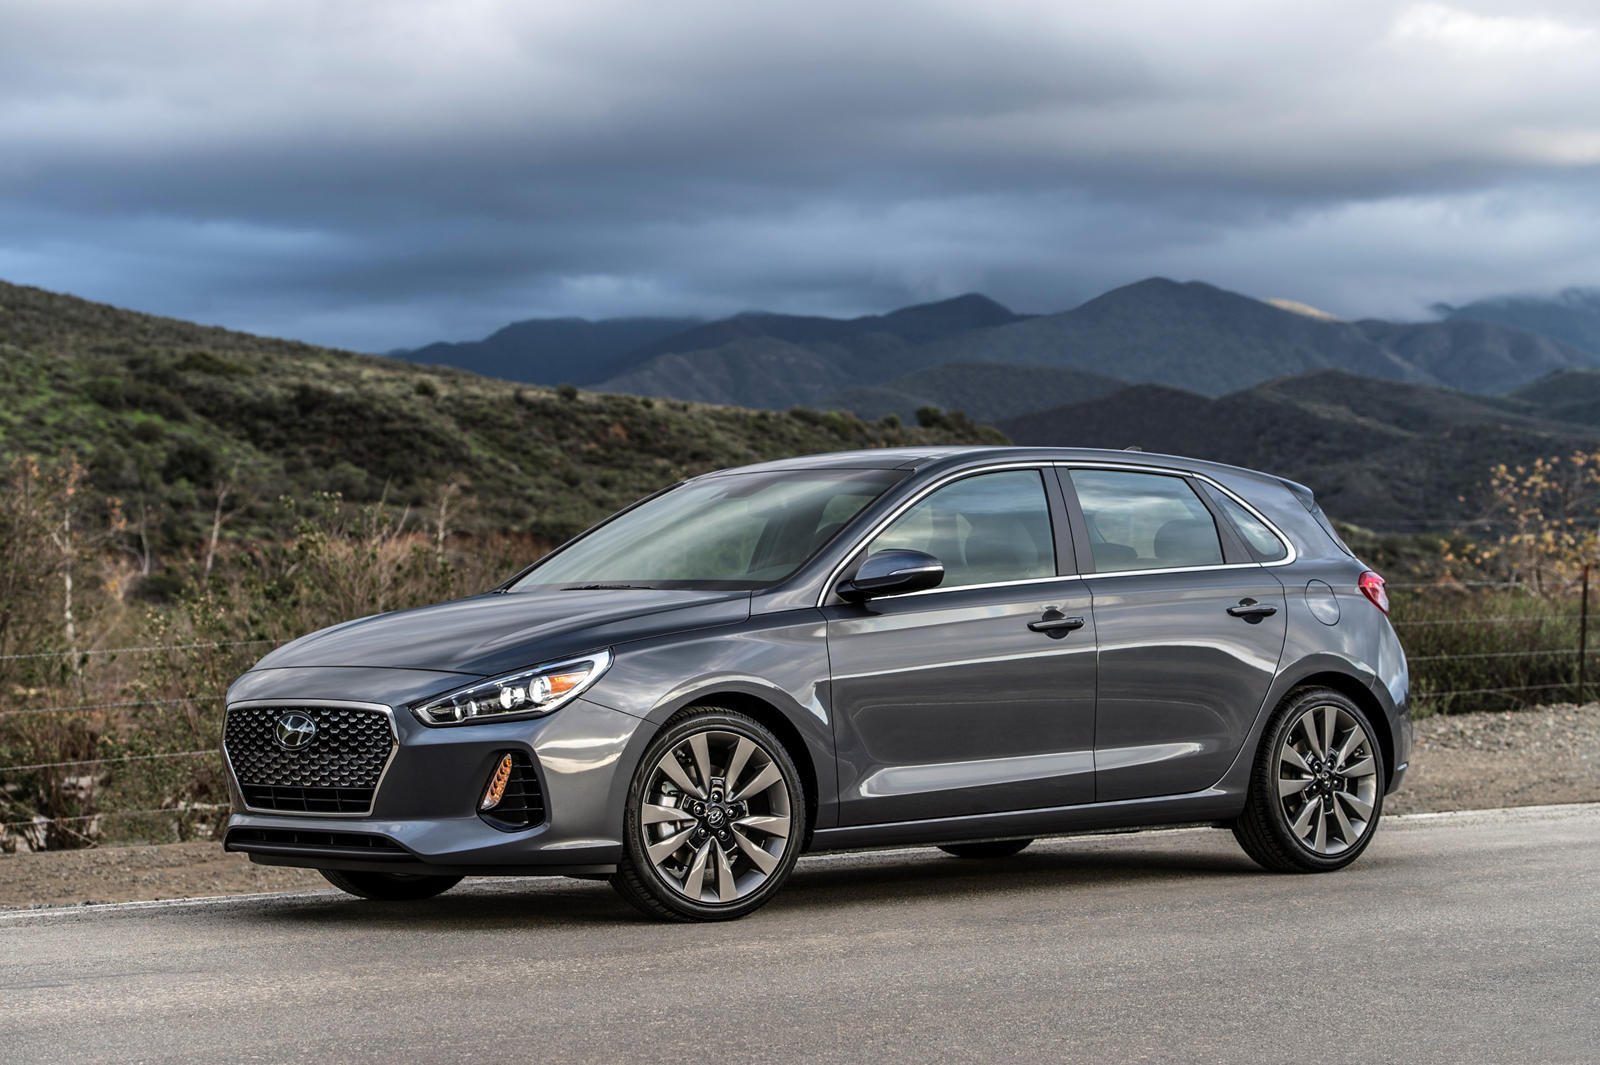 2020 Hyundai Elantra Gt Release Date and Concept